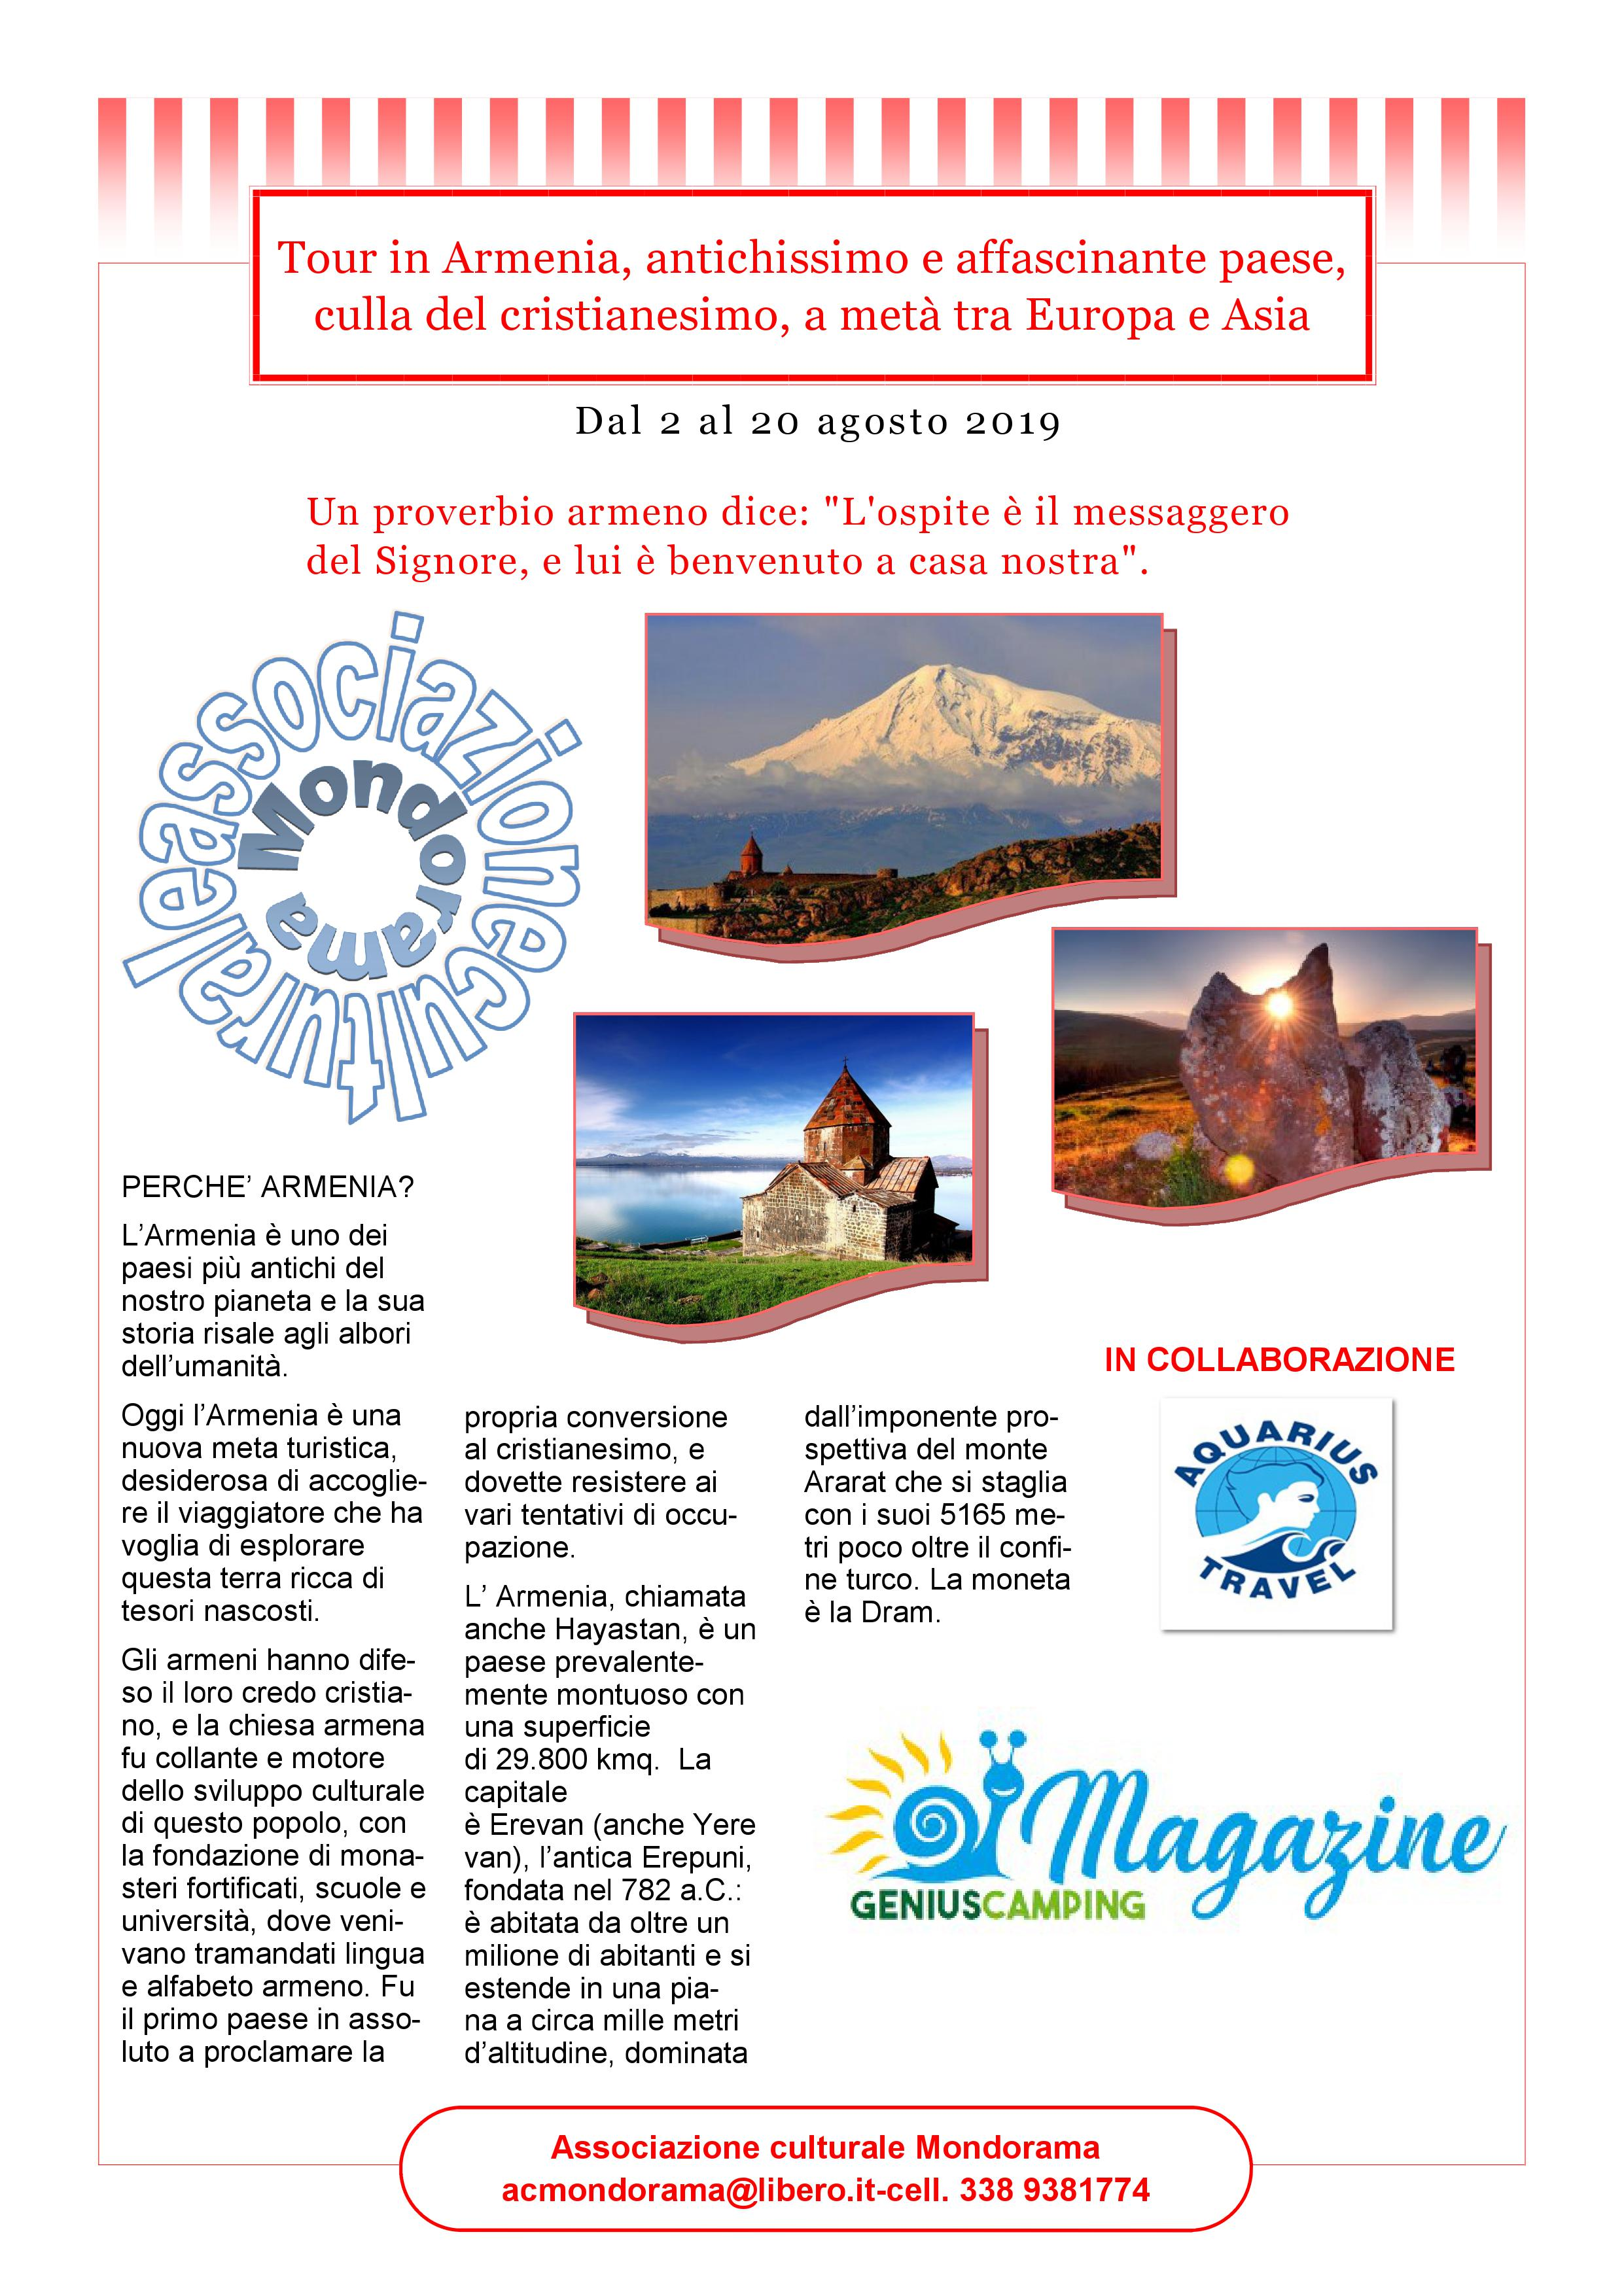 Tour dell'Armenia in camper agosto 2019